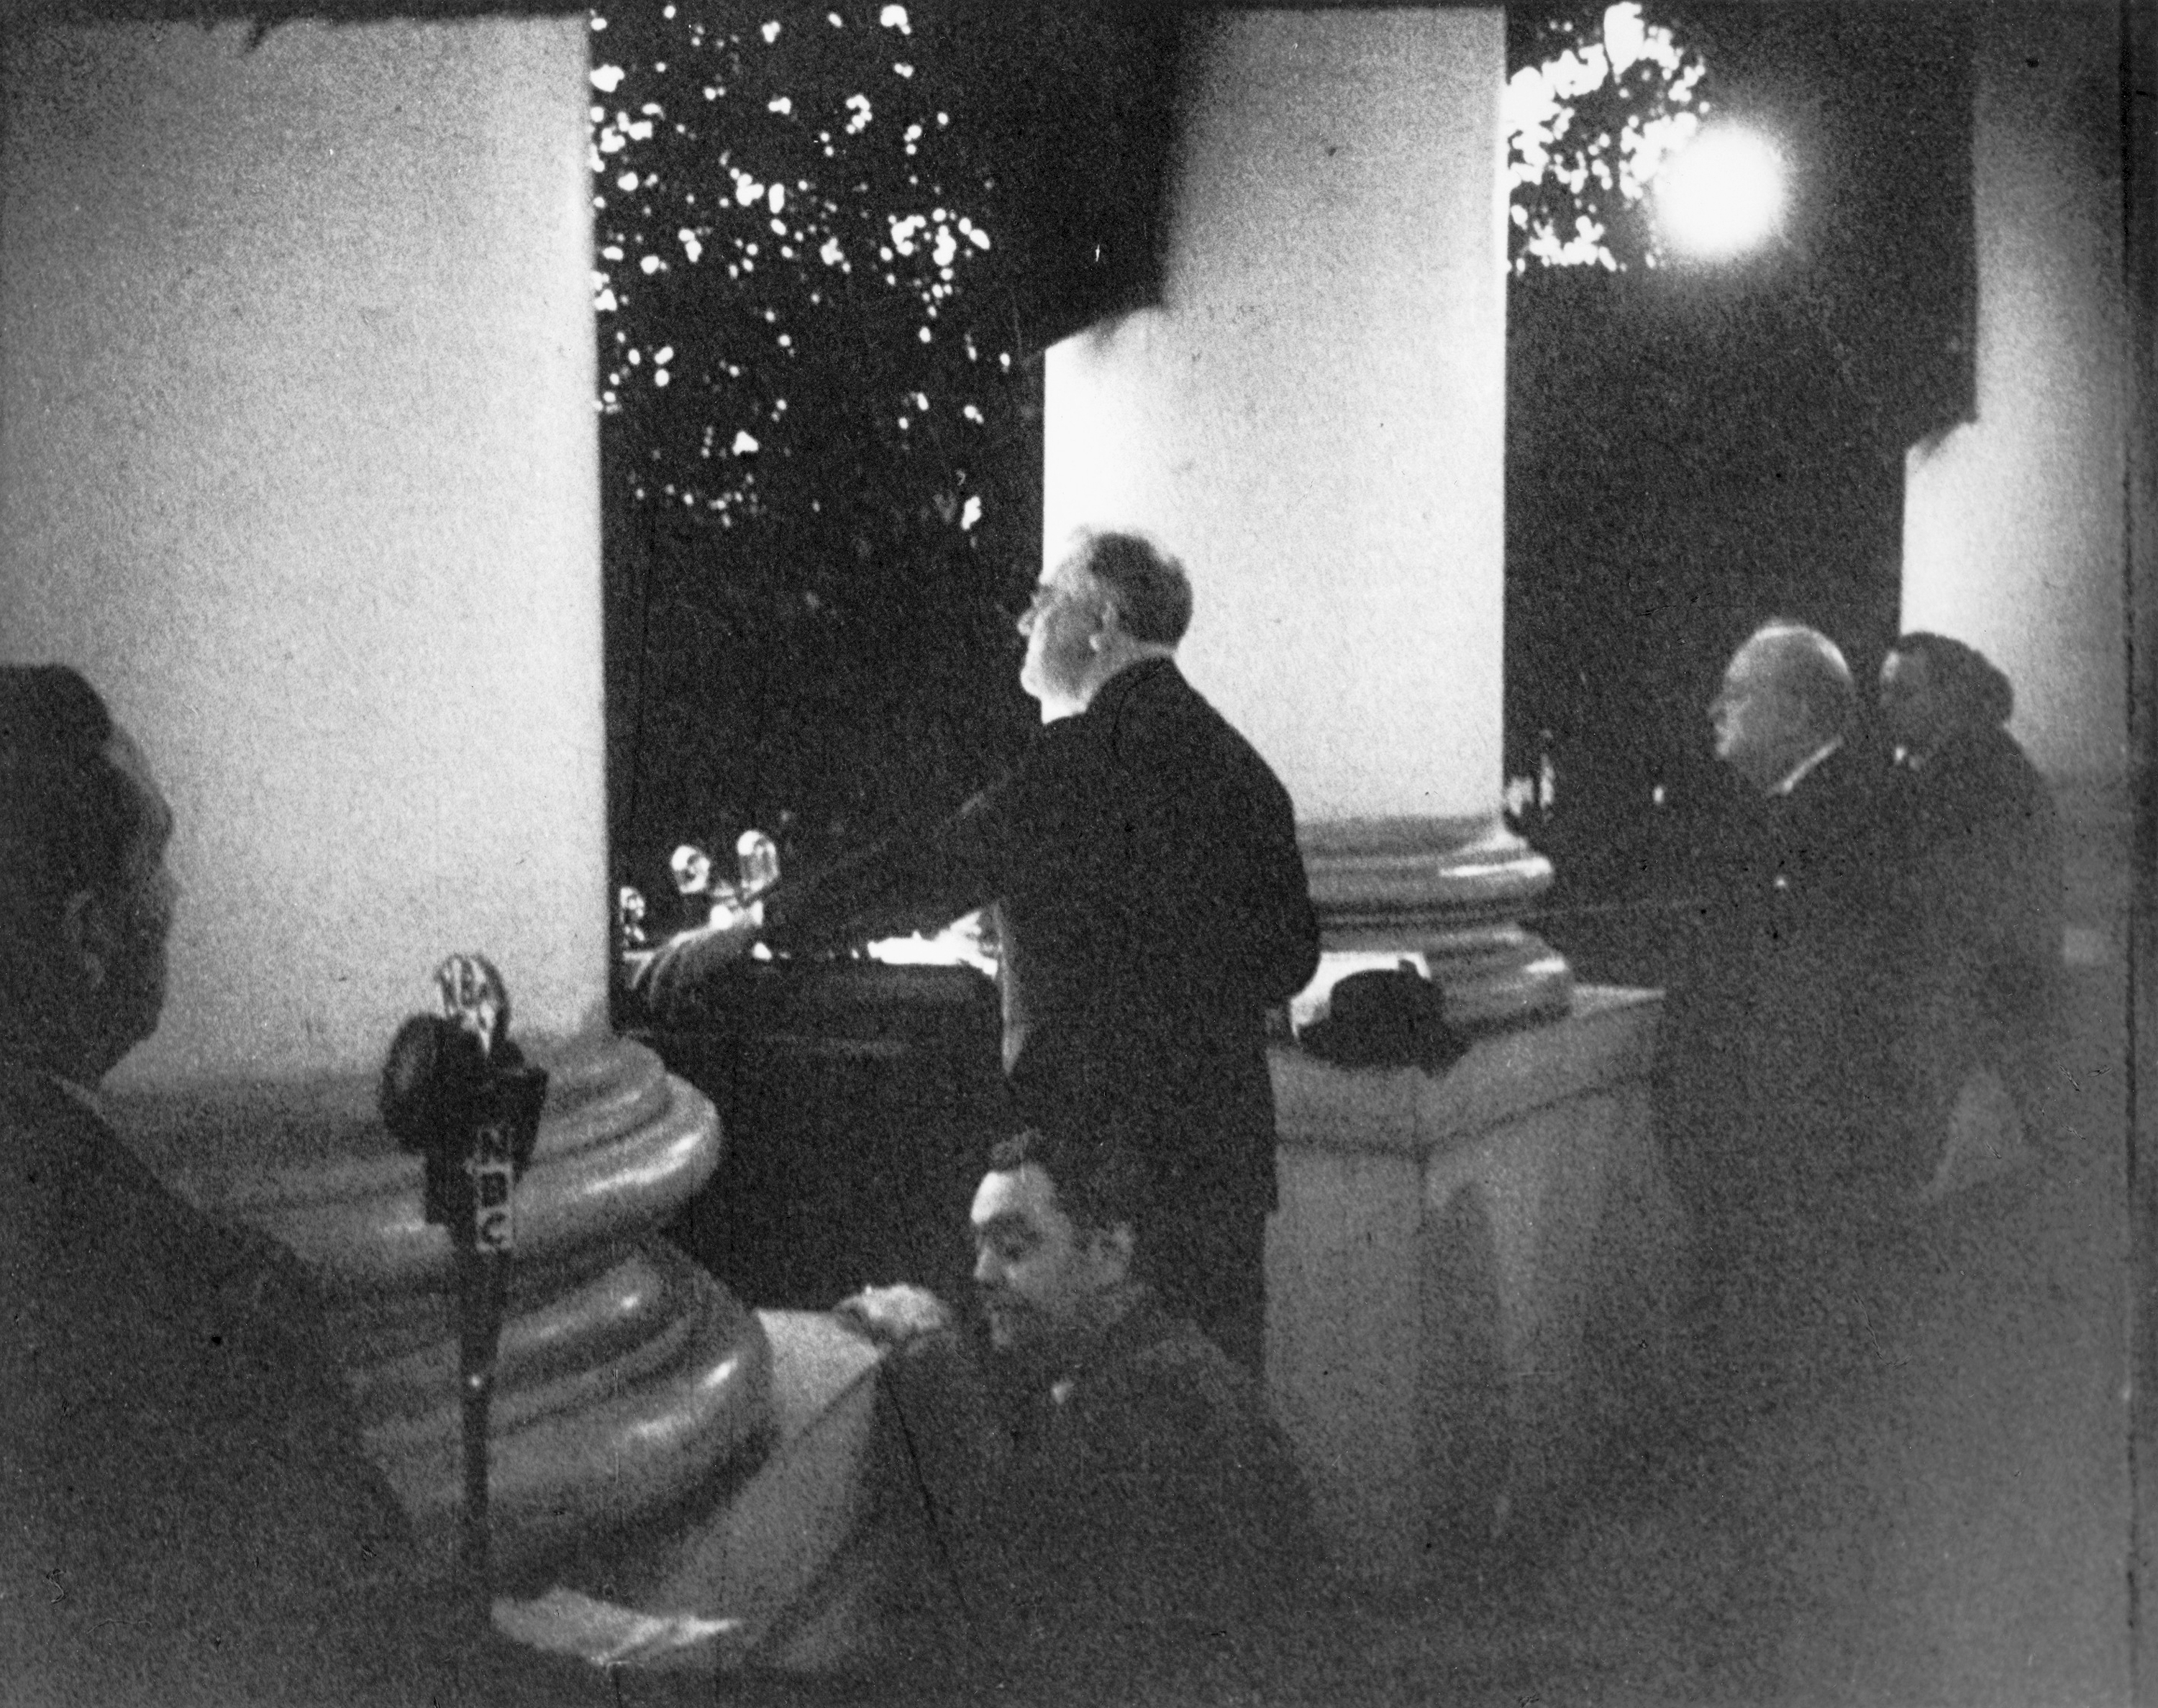 Roosevelt Addresses The Crowd At The Christmas Tree Lighting Ceremony From The White House South Portico On December 24 1941 Churchill Can Be Seen On The